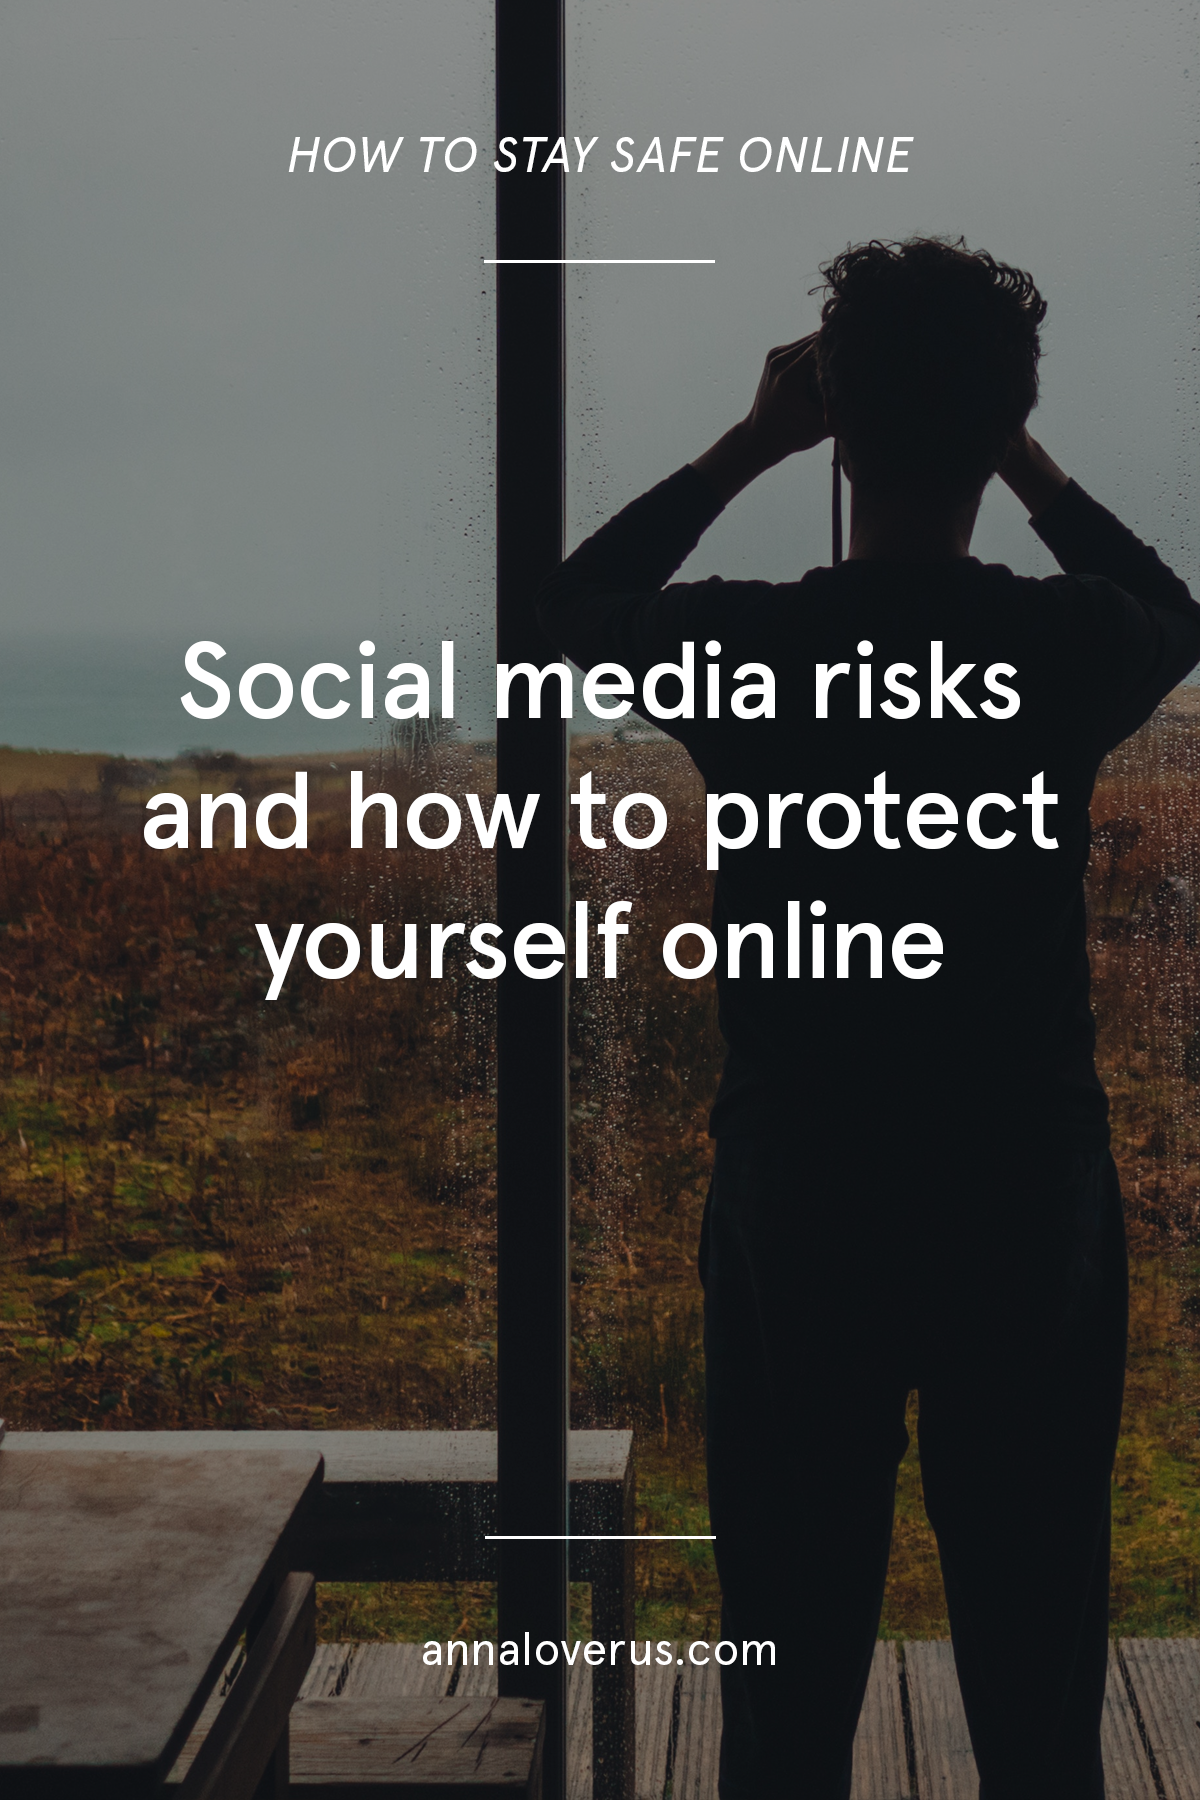 Keep track of social media risks and learn how to protect yourself online